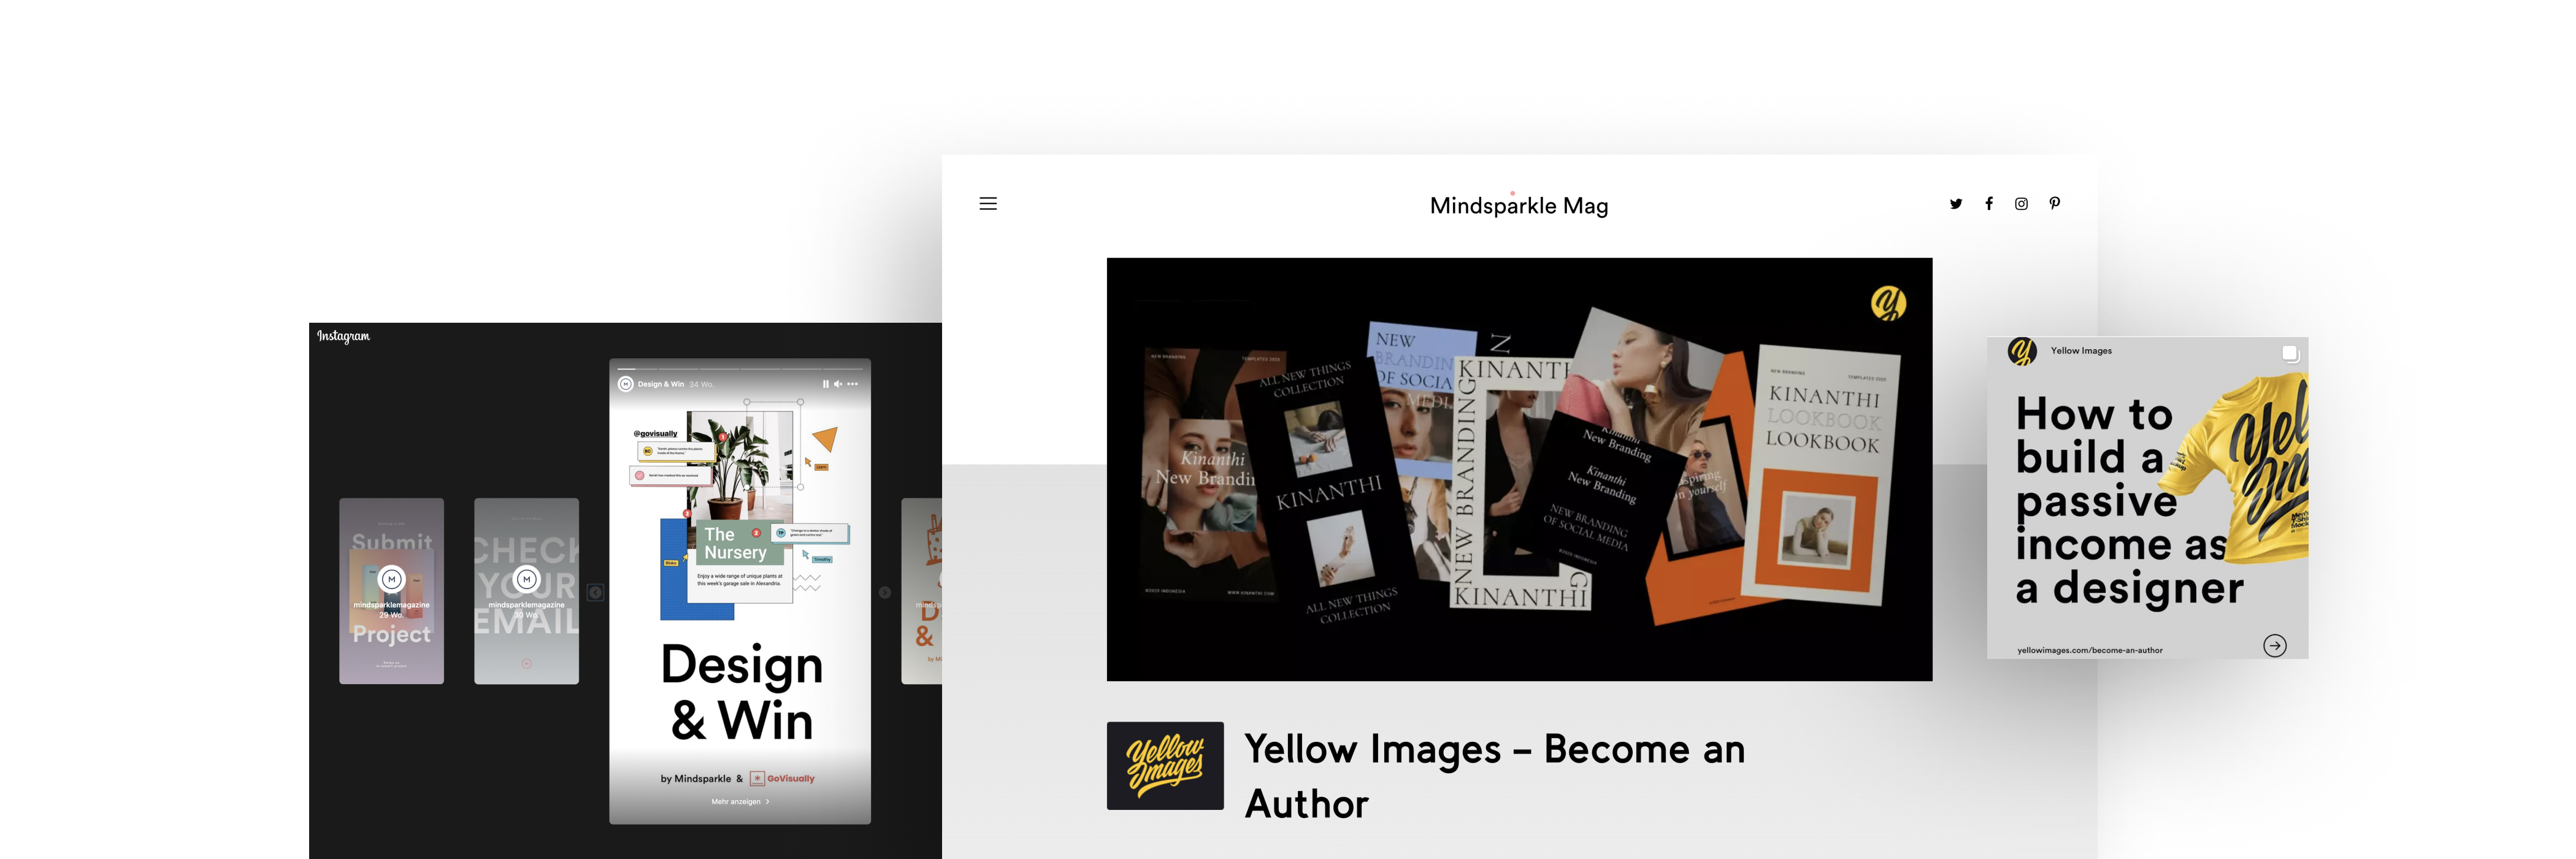 Advertise on Mindsparkle Mag and get access to a worldwide creative design demographic. We offer sponsored content & display advertising as well as brand partnerships.